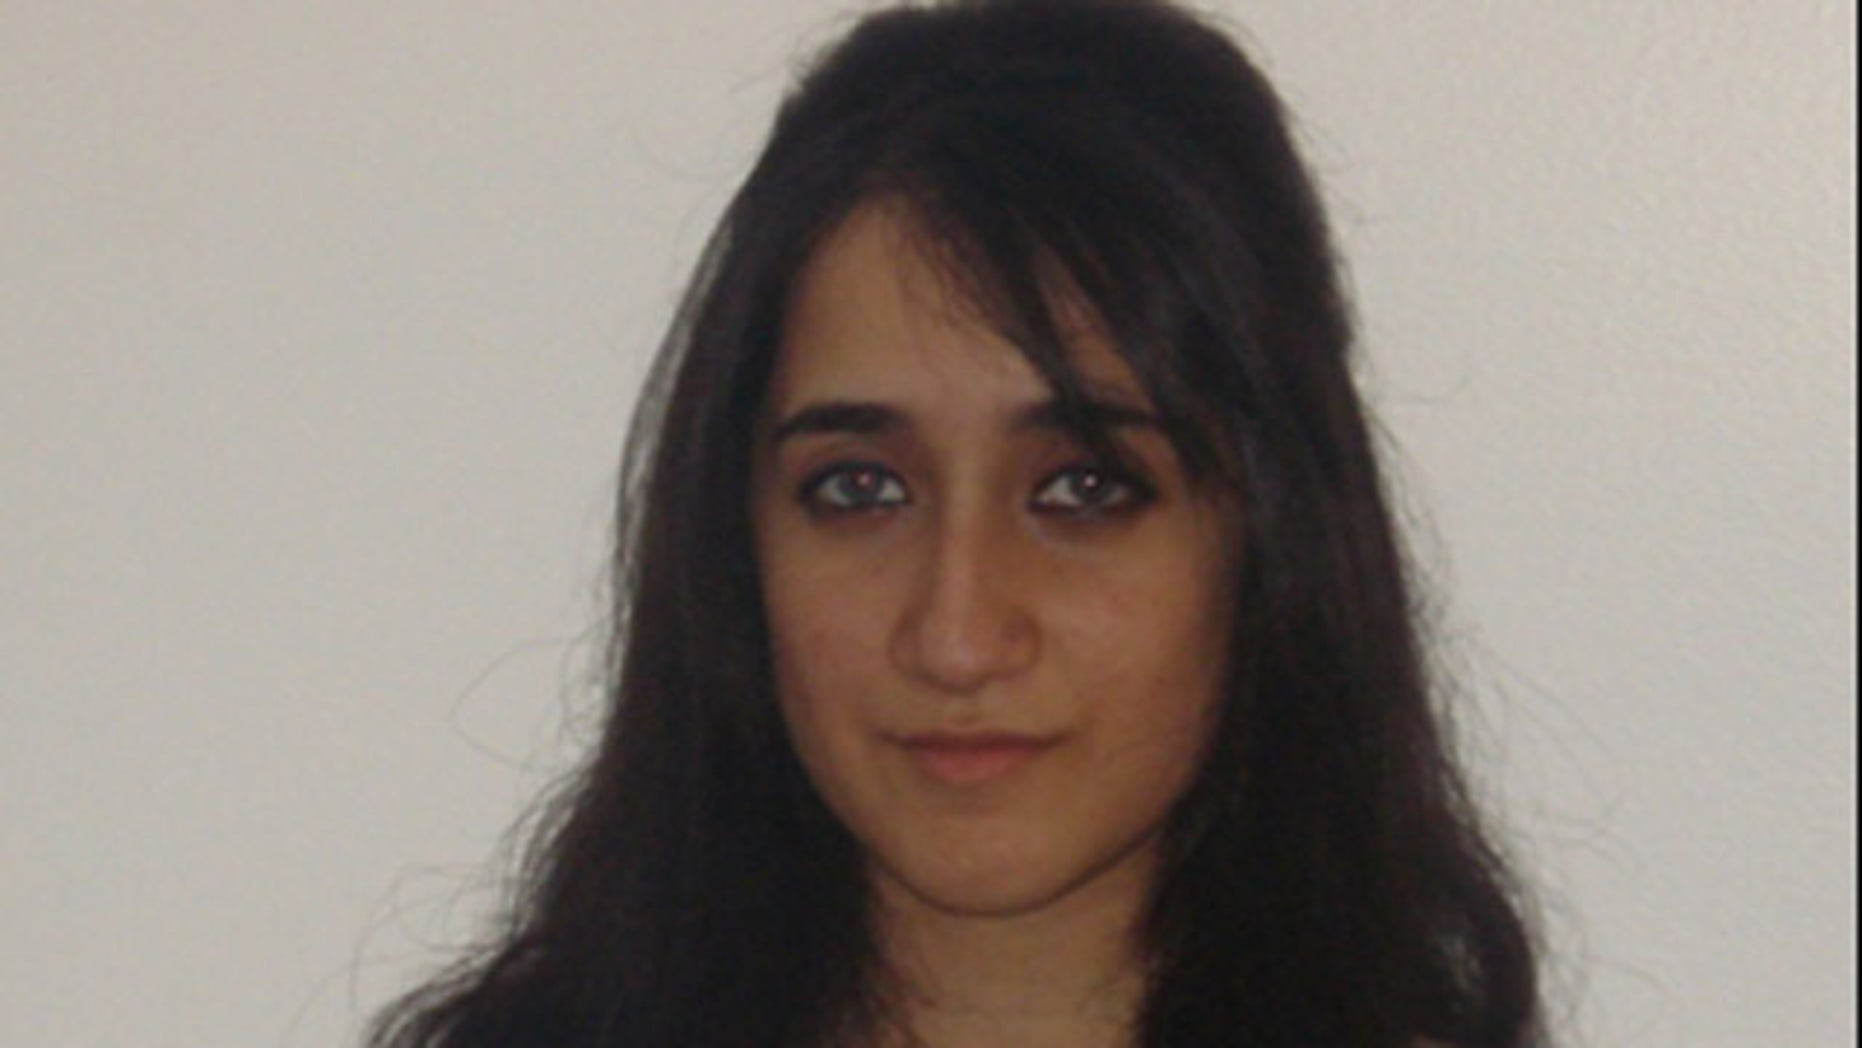 Zaineb Chaudhary was last seen March 11 in Skokie, Ill. Police say they believe the 16-year-old girl ran away from her parents' home to avoid an arranged marriage (Skokie Police Department).